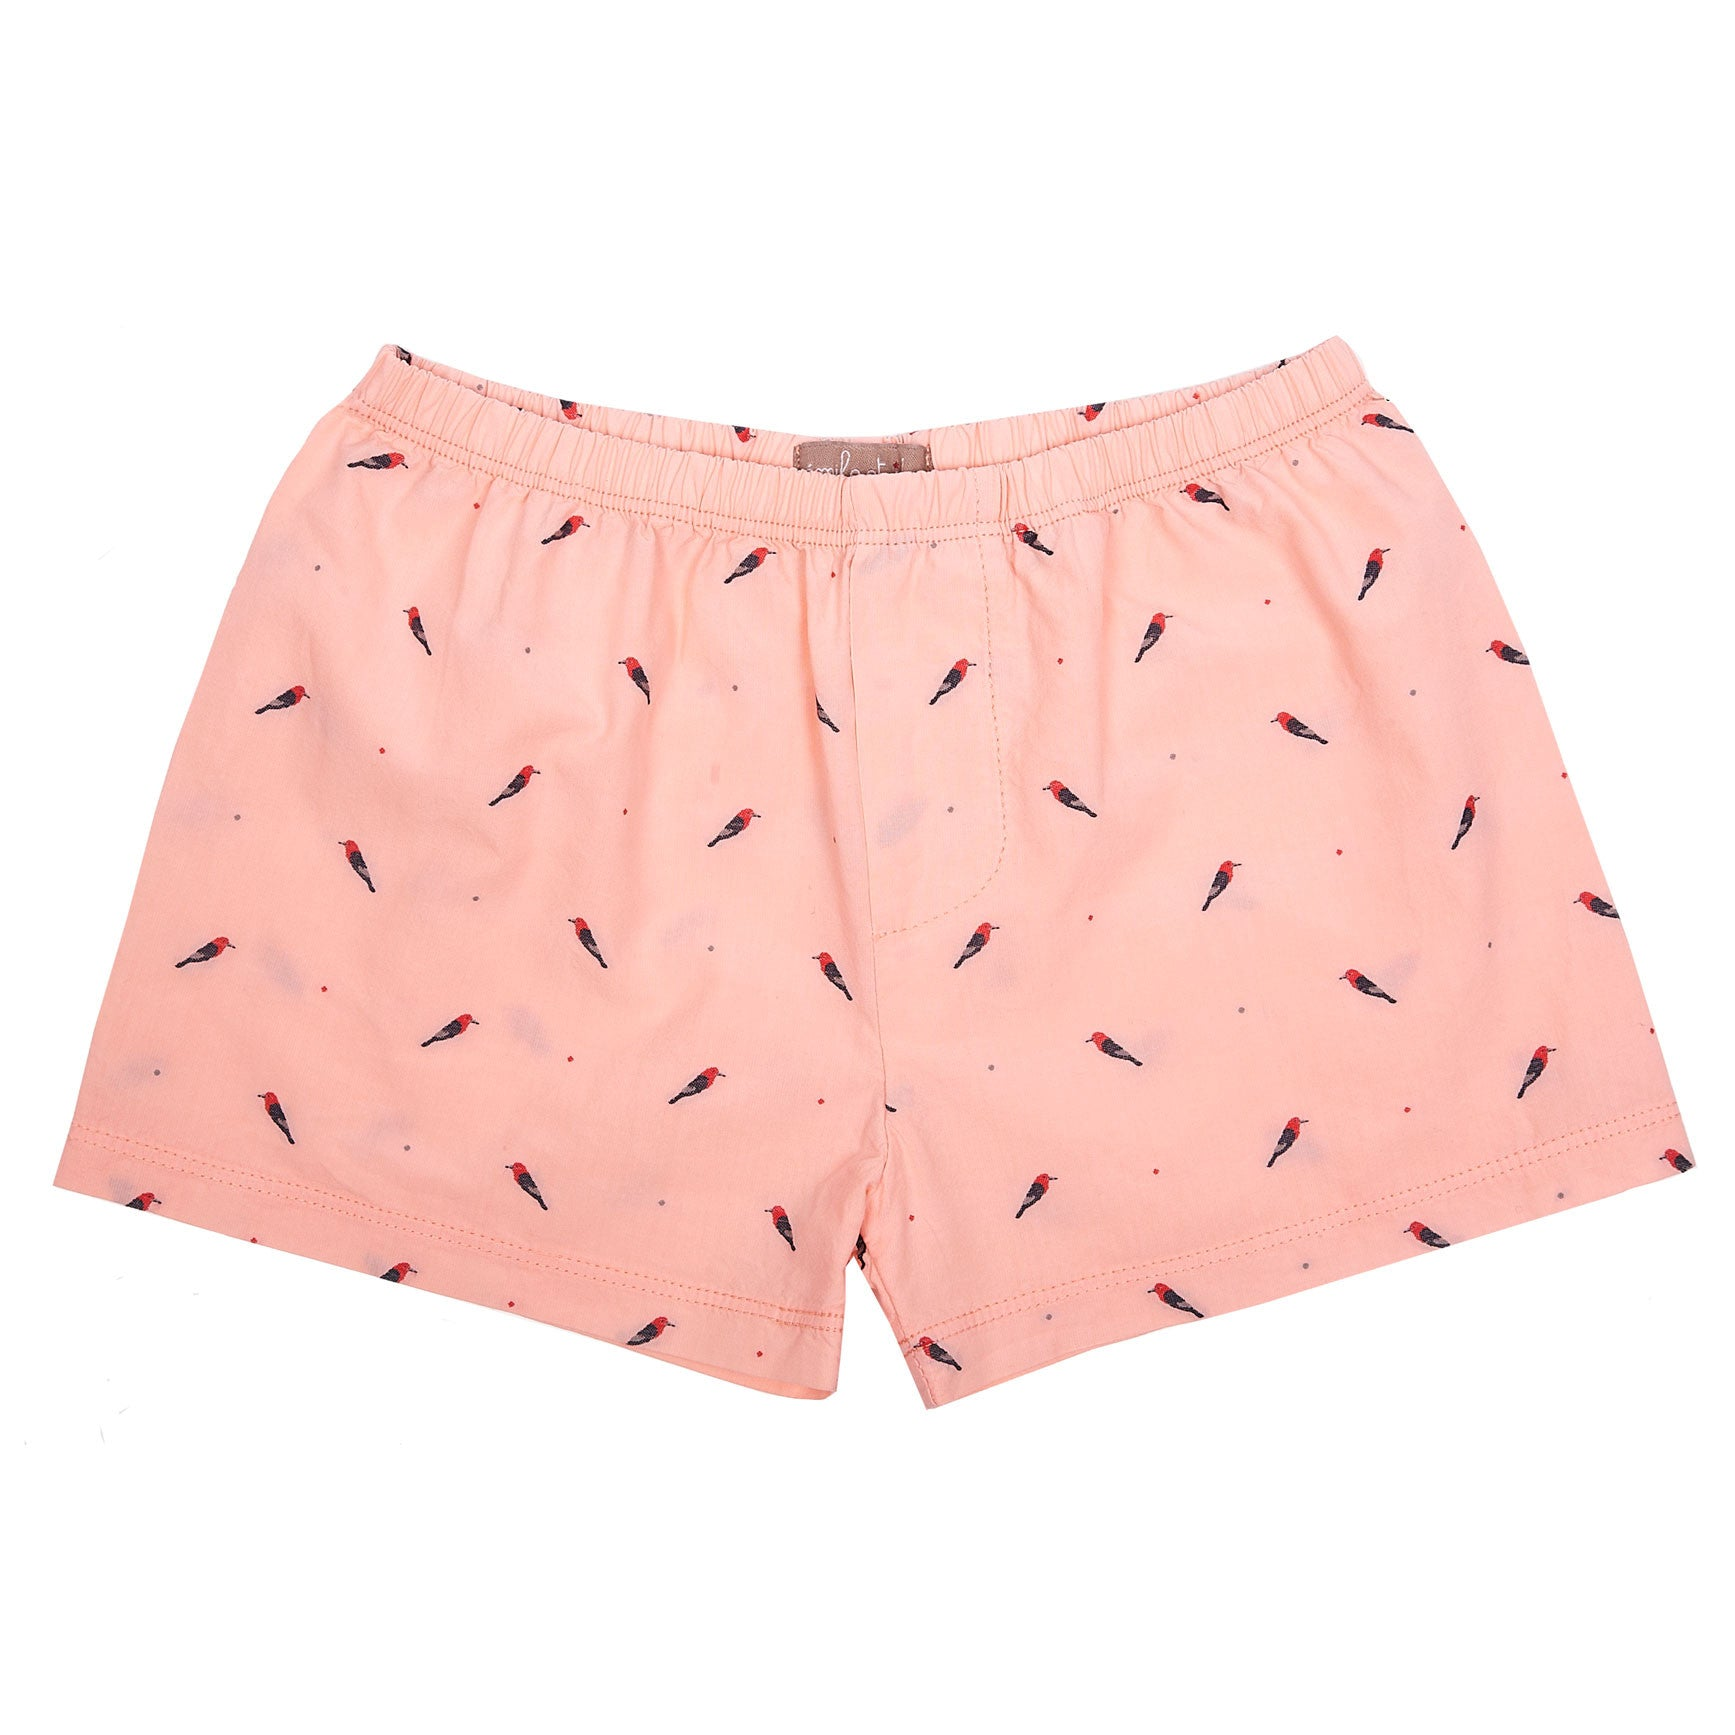 Emile Pink Parrot Print Shorts - Ladida